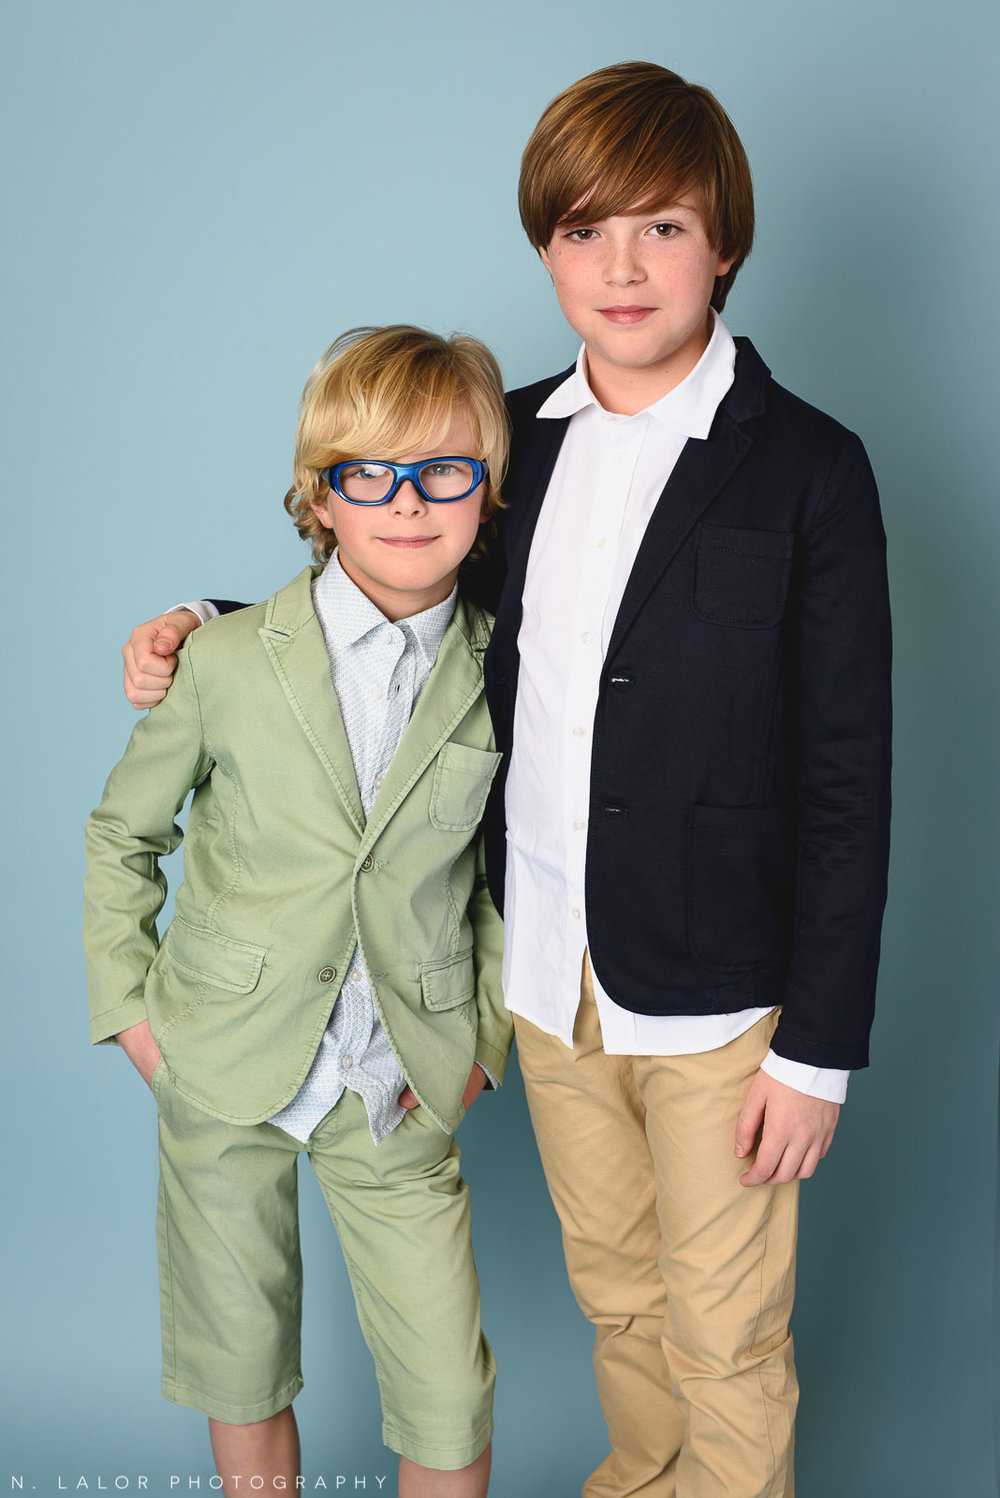 Brothers. Kids fashion portrait by N. Lalor Photography. New Canaan, Connecticut.